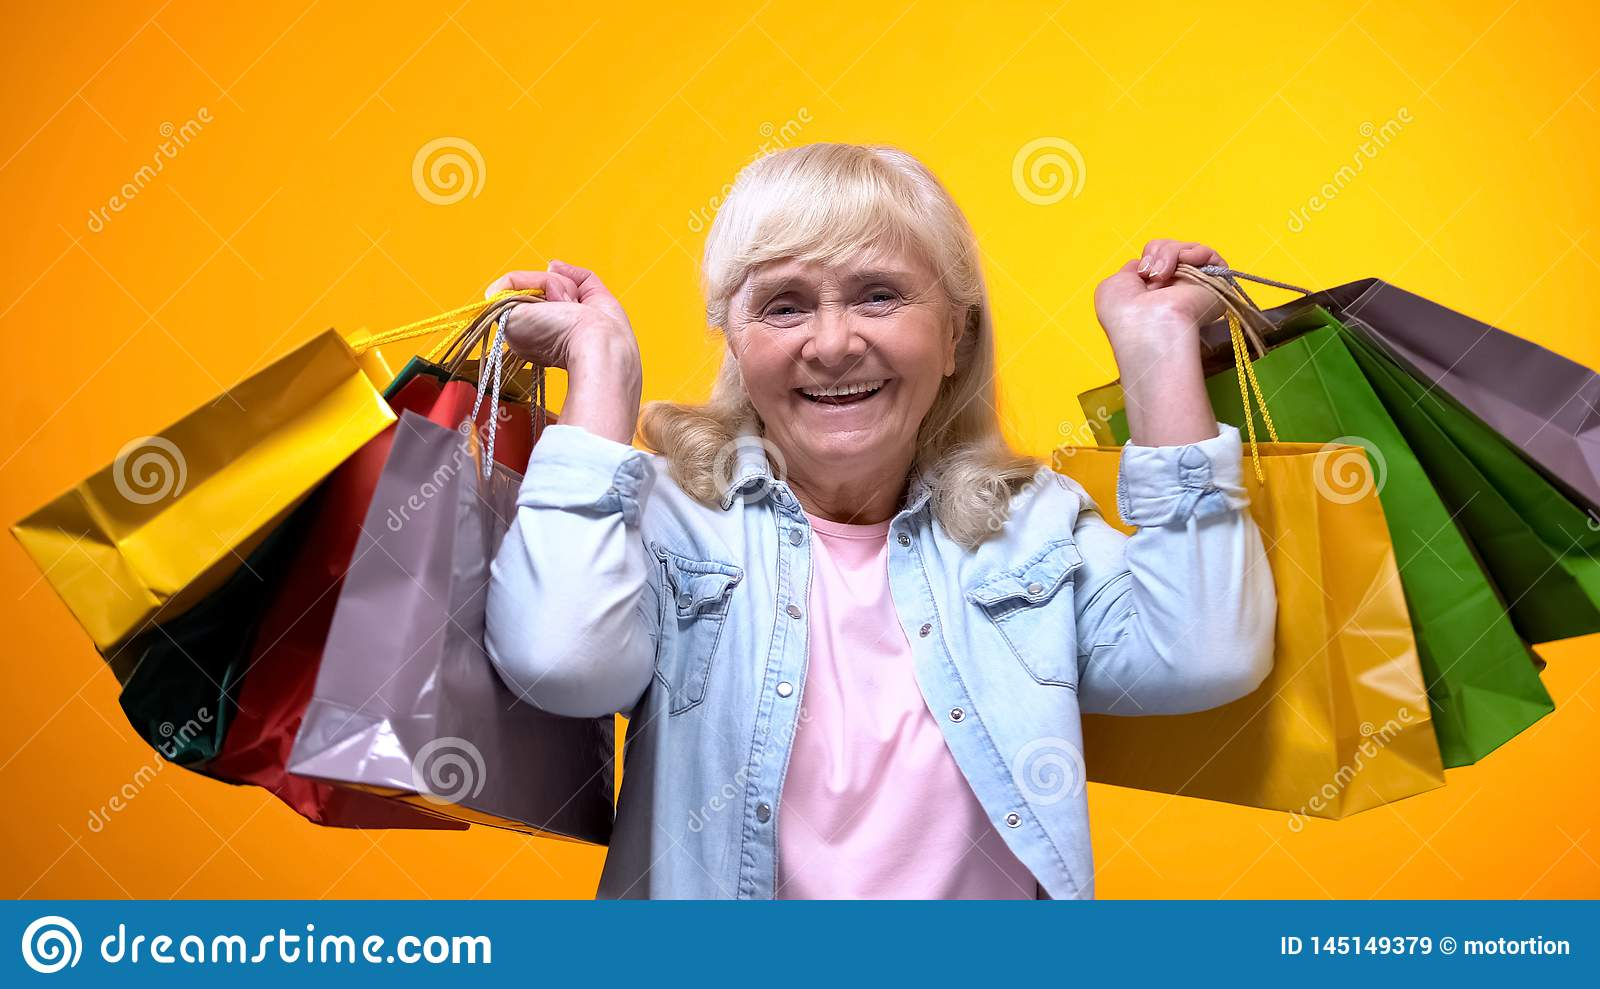 Happy elderly woman showing many shopping bags, leisure time, spending money